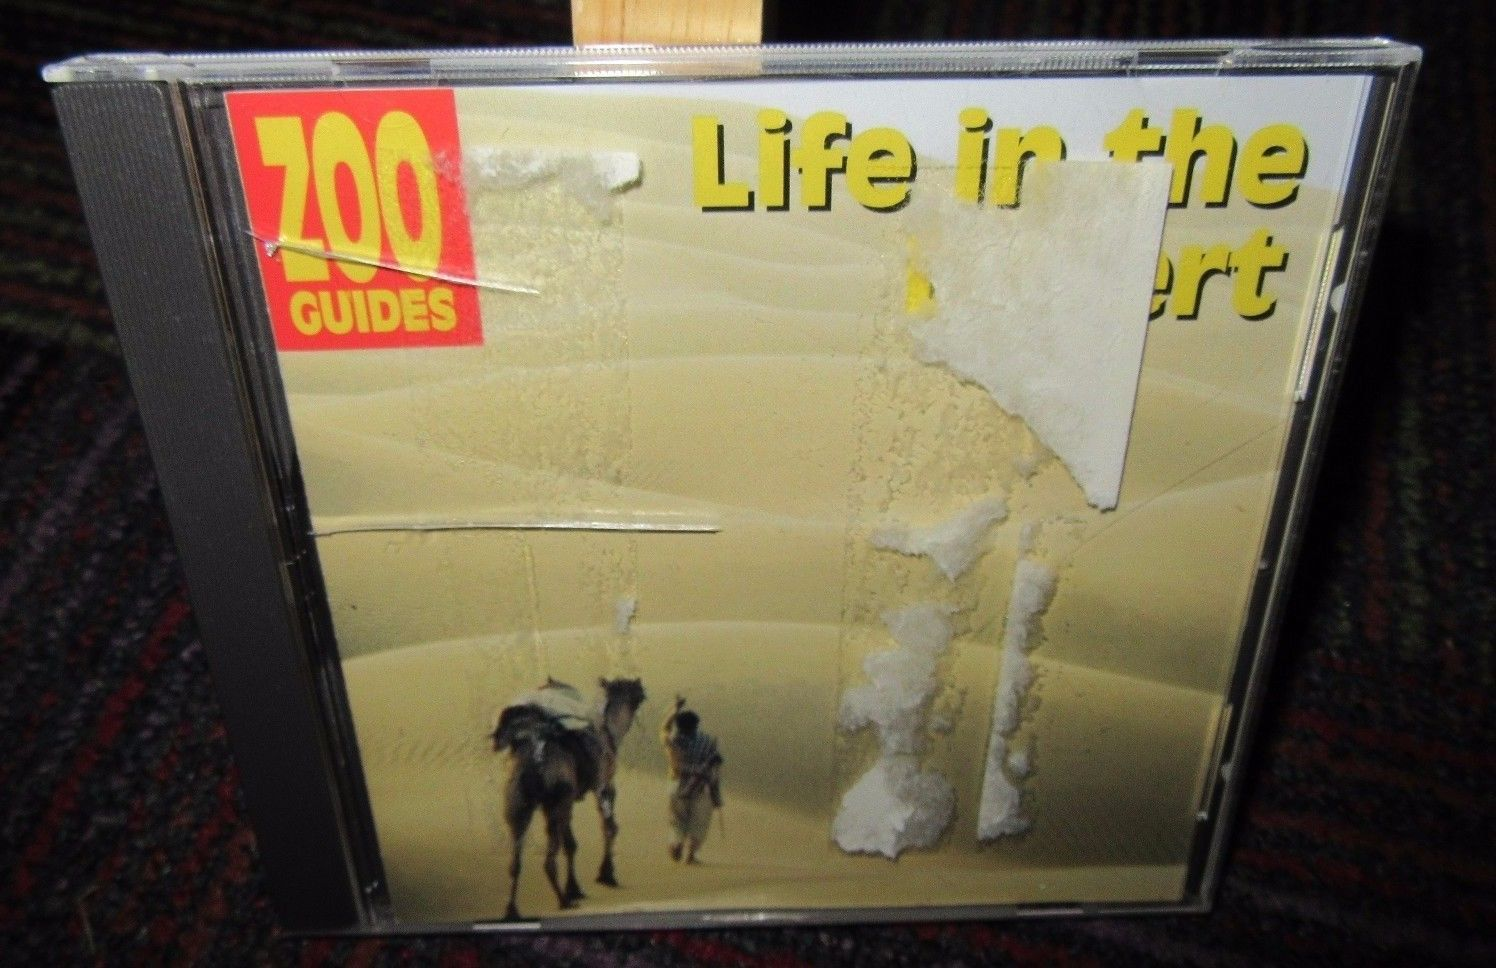 Zooguides Volume 6 Life In The Desert Pc Cd And Similar Items